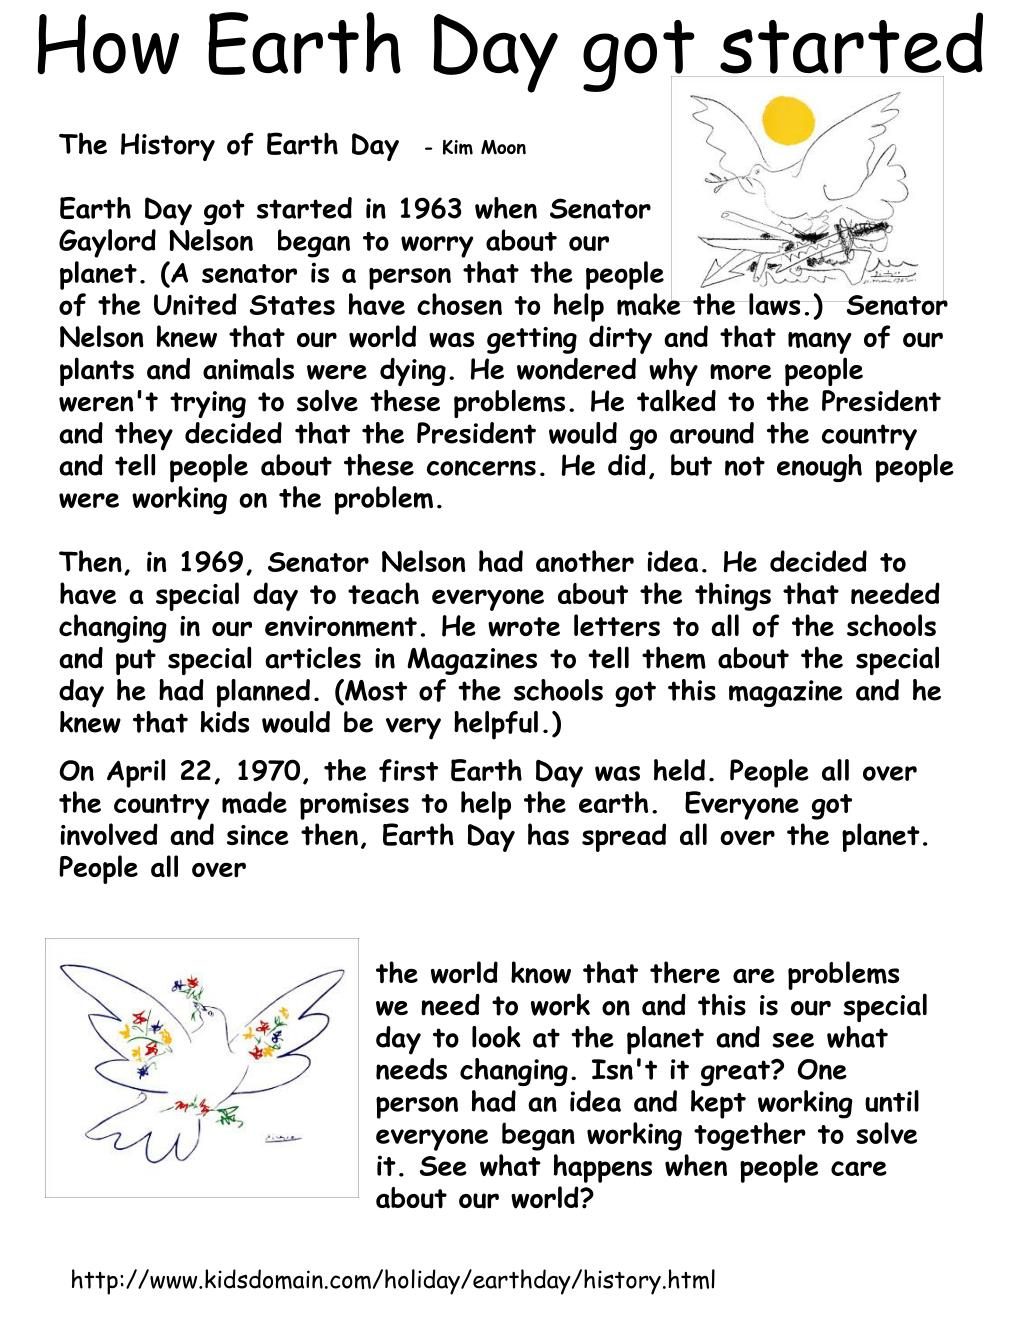 How Earth Day got started